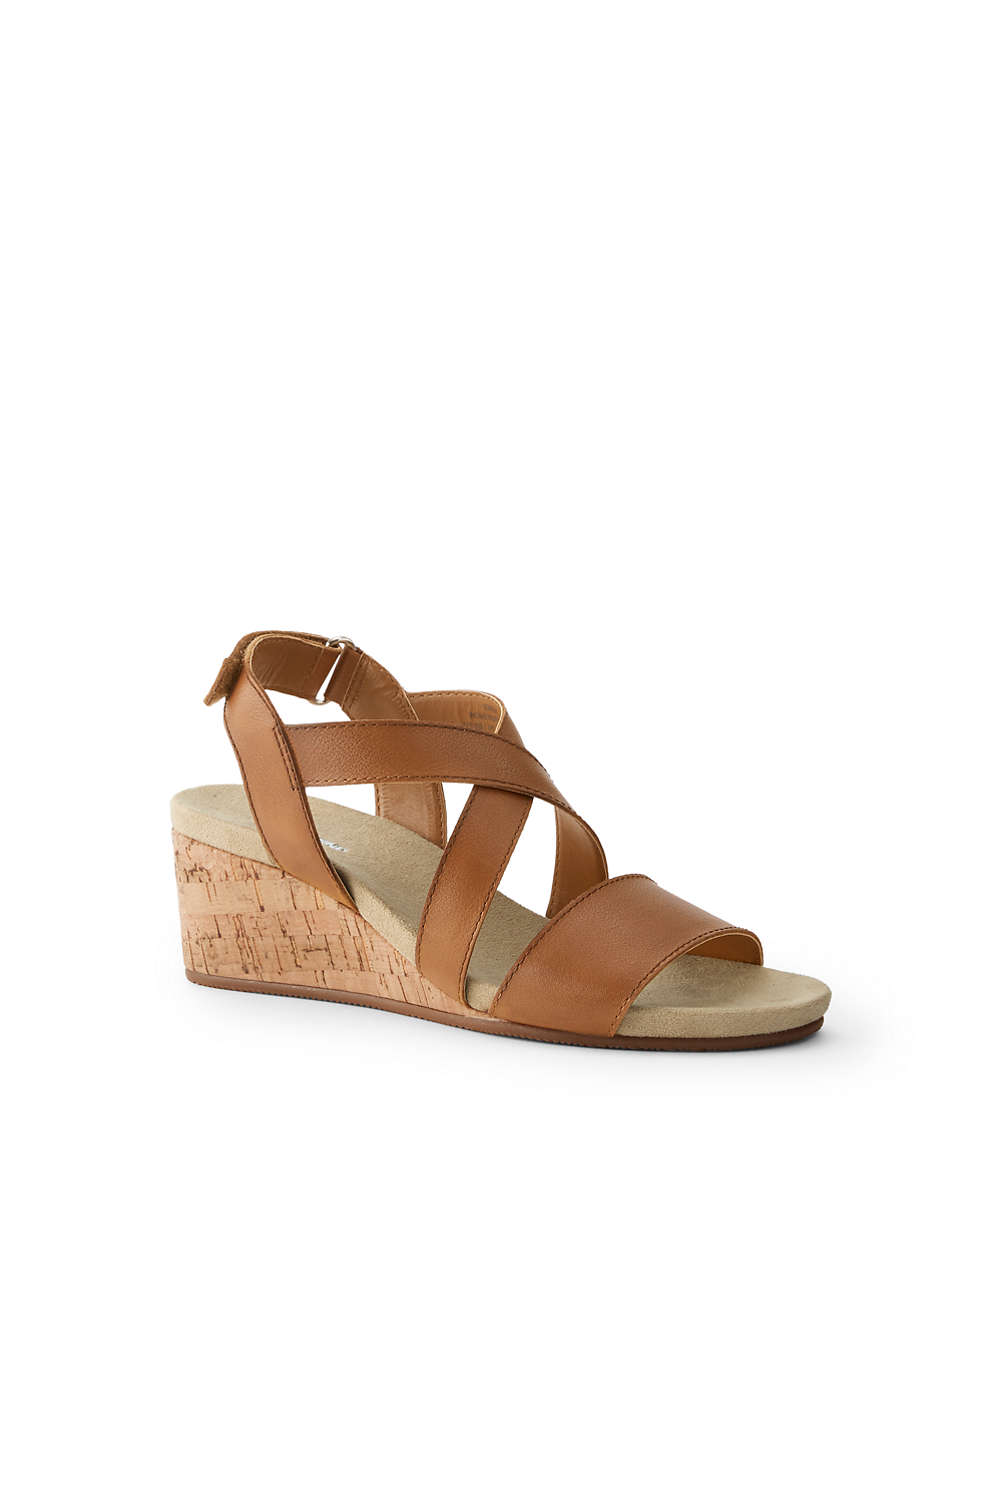 2689a5c9f732 Women s Comfort Cork Wedge Sandals from Lands  End